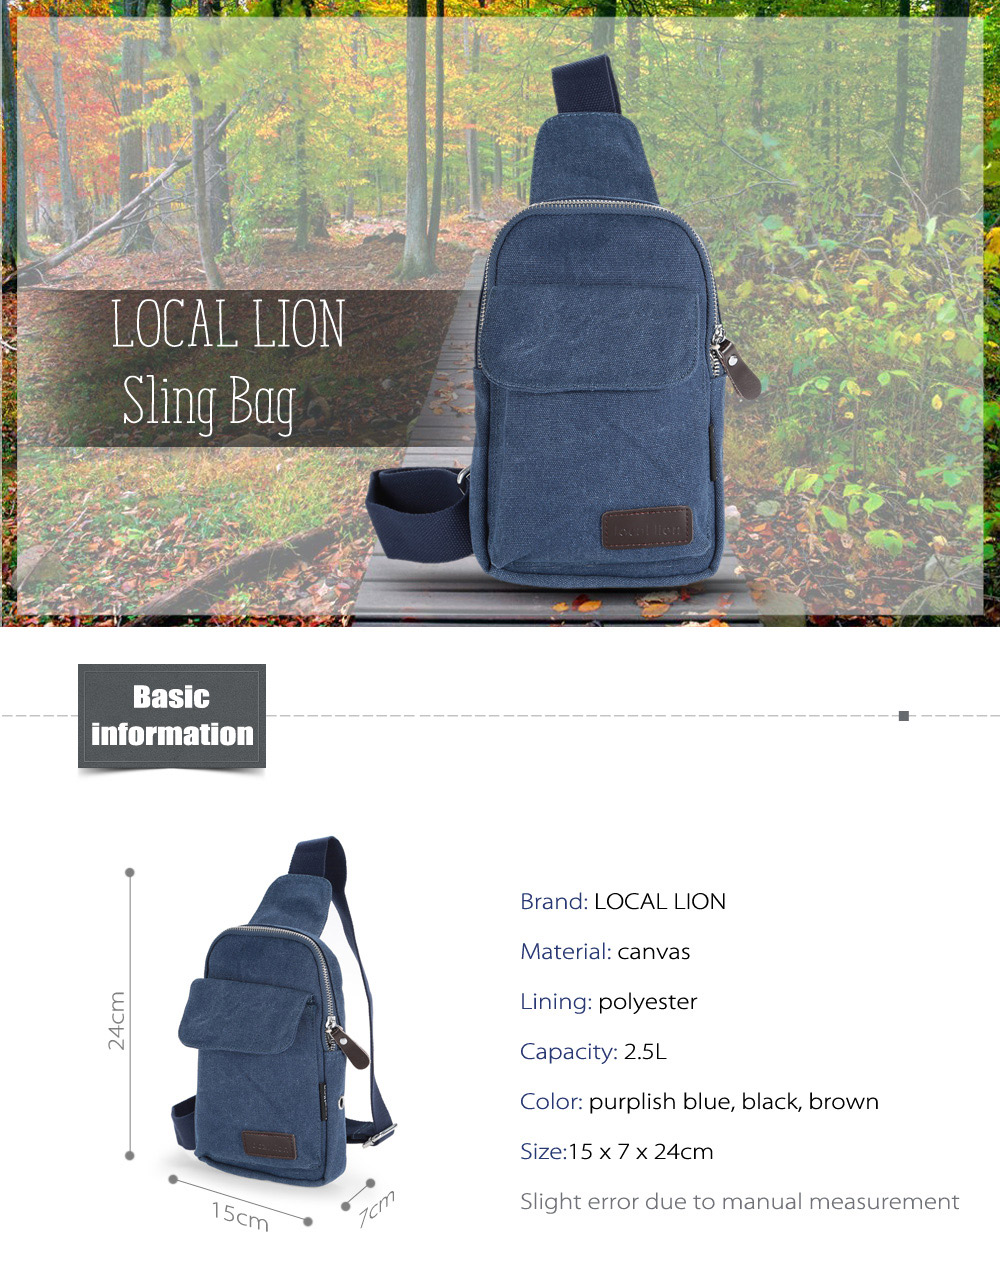 LOCAL LION 1319 2.5L Canvas Leisure Sling Bag with Polyester Lining